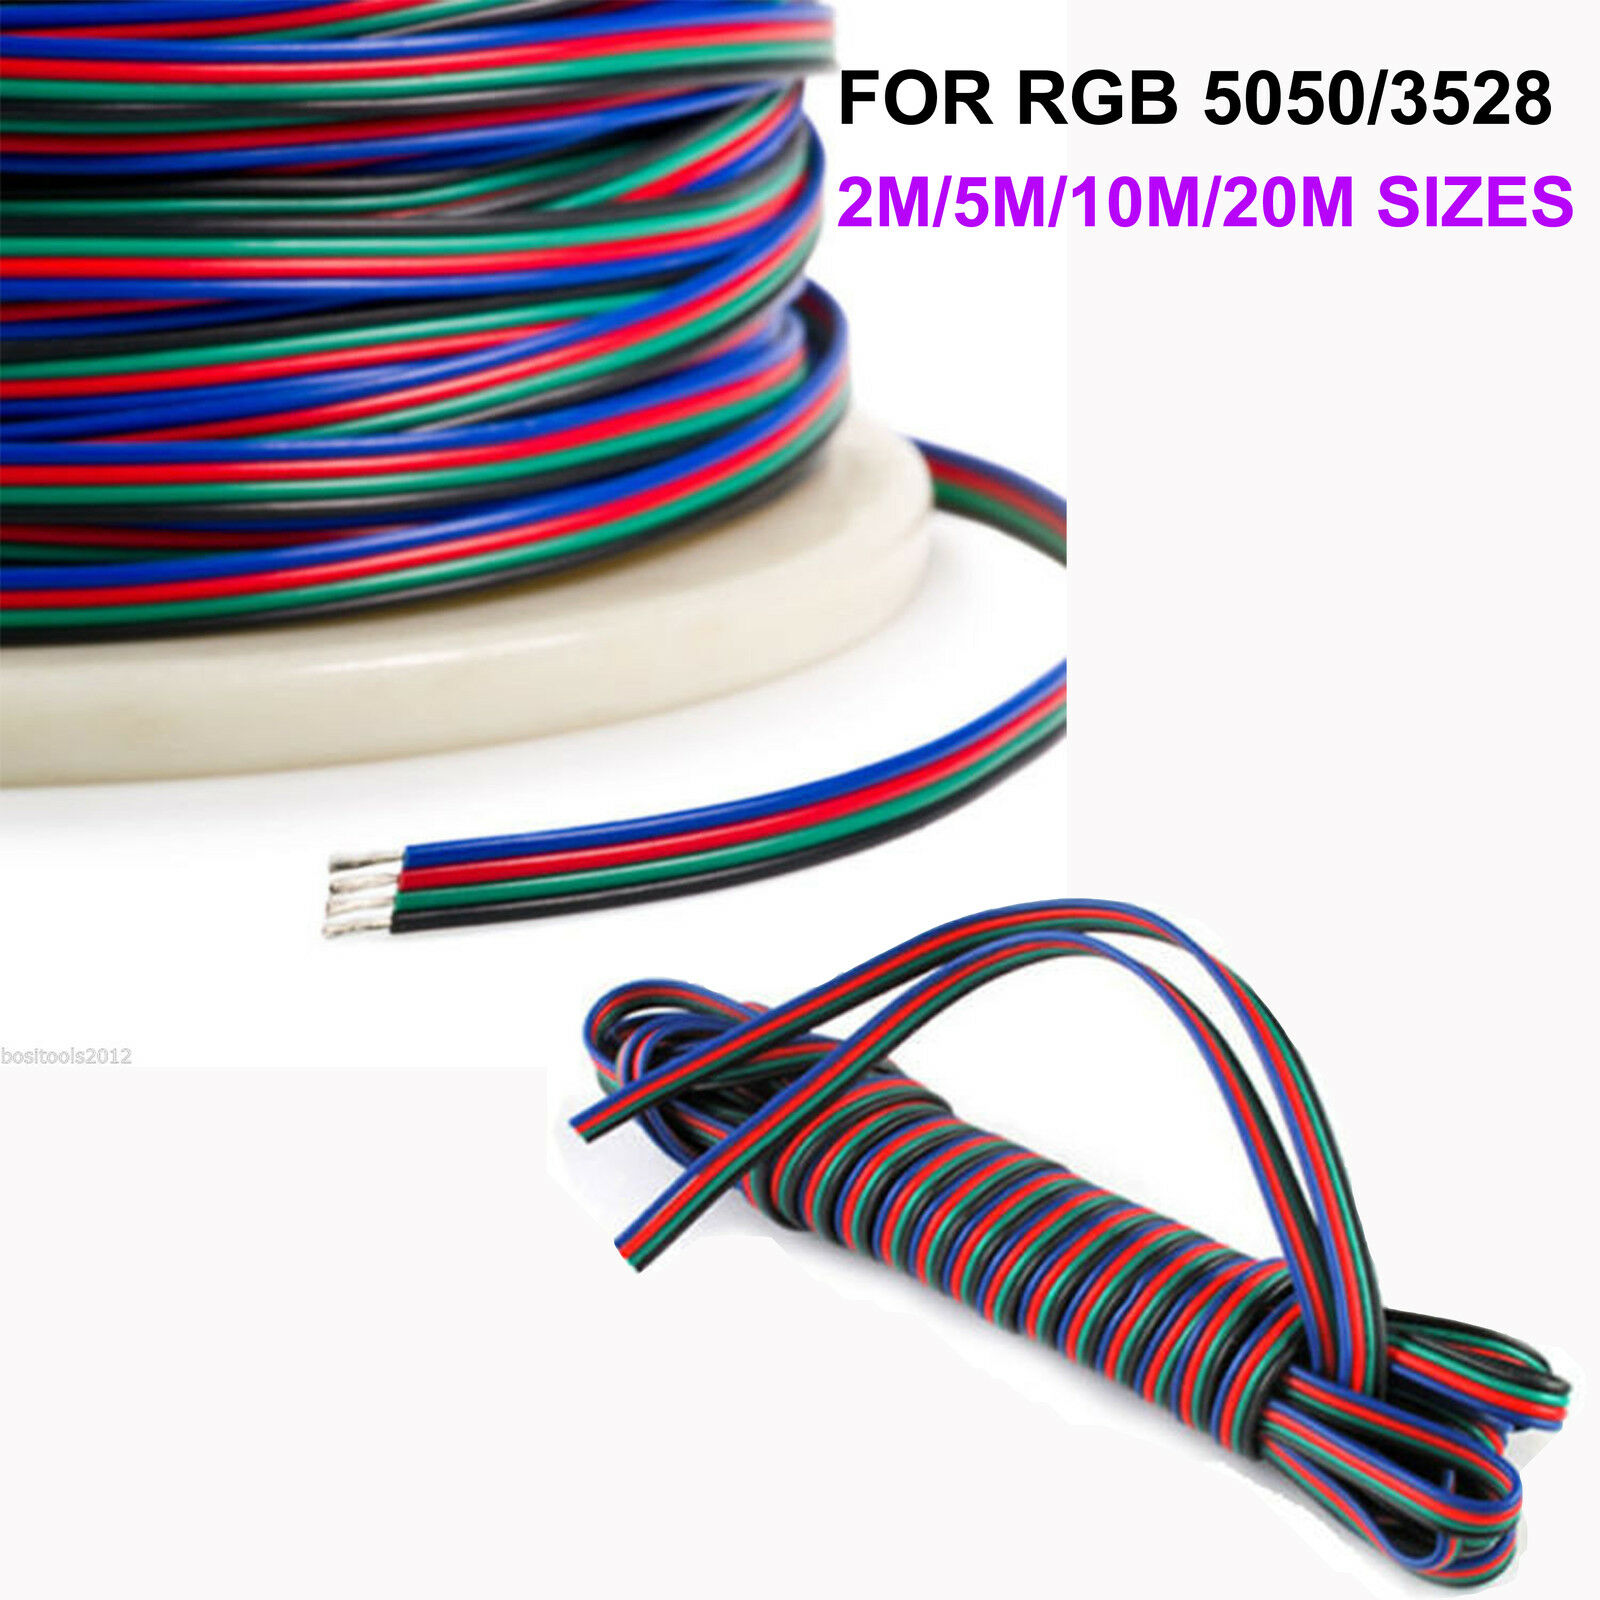 Brand New 2m 5m 10m 20m 4 Pin Rgb Extension Cable Wire For 3528 5050 Connector Cord Led Strip Ebay